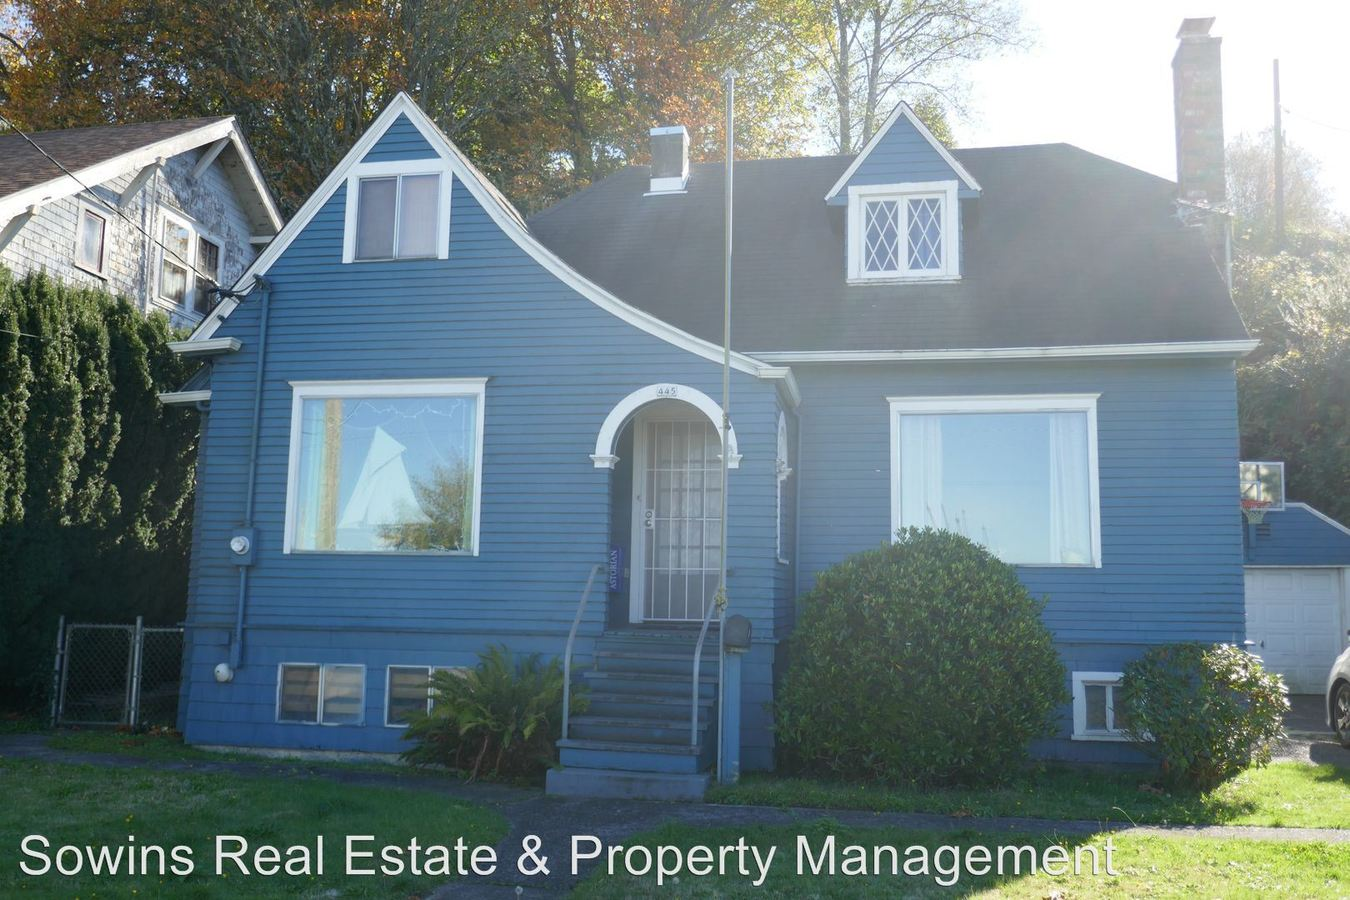 Houses For Rent In Astoria Oregon - House Decor